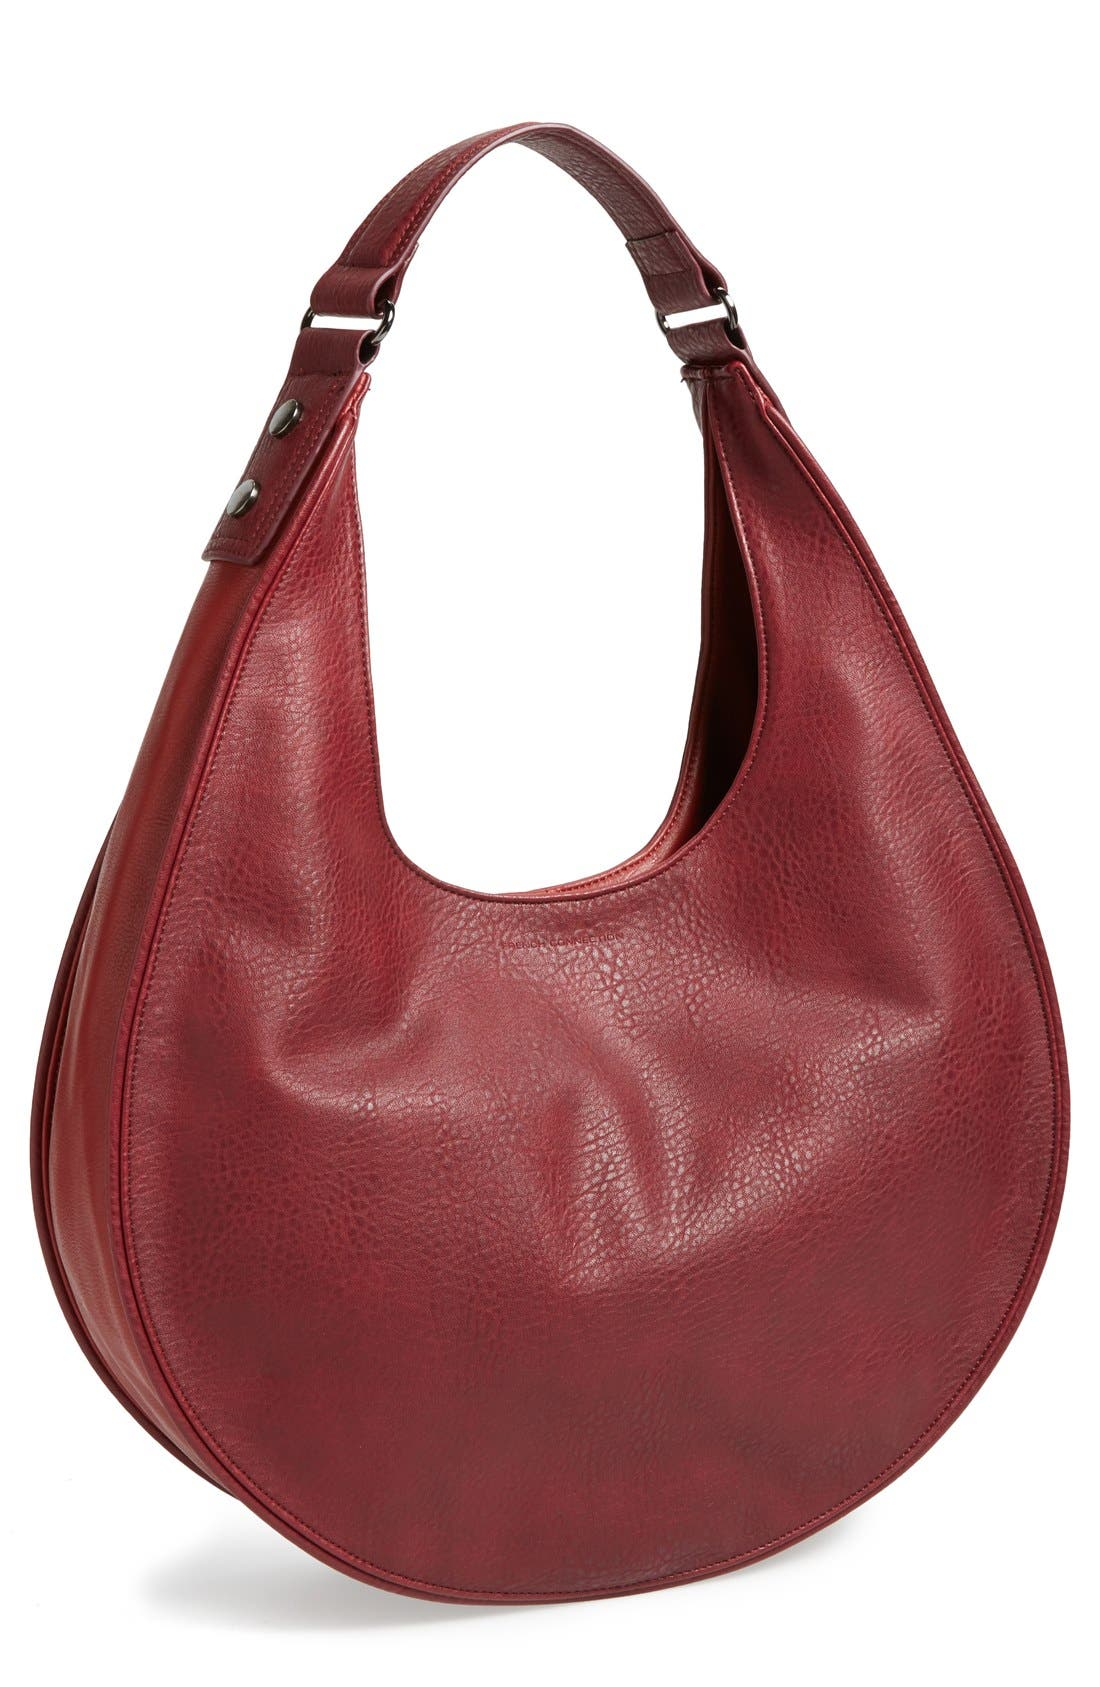 Main Image - French Connection 'Elite' Hobo